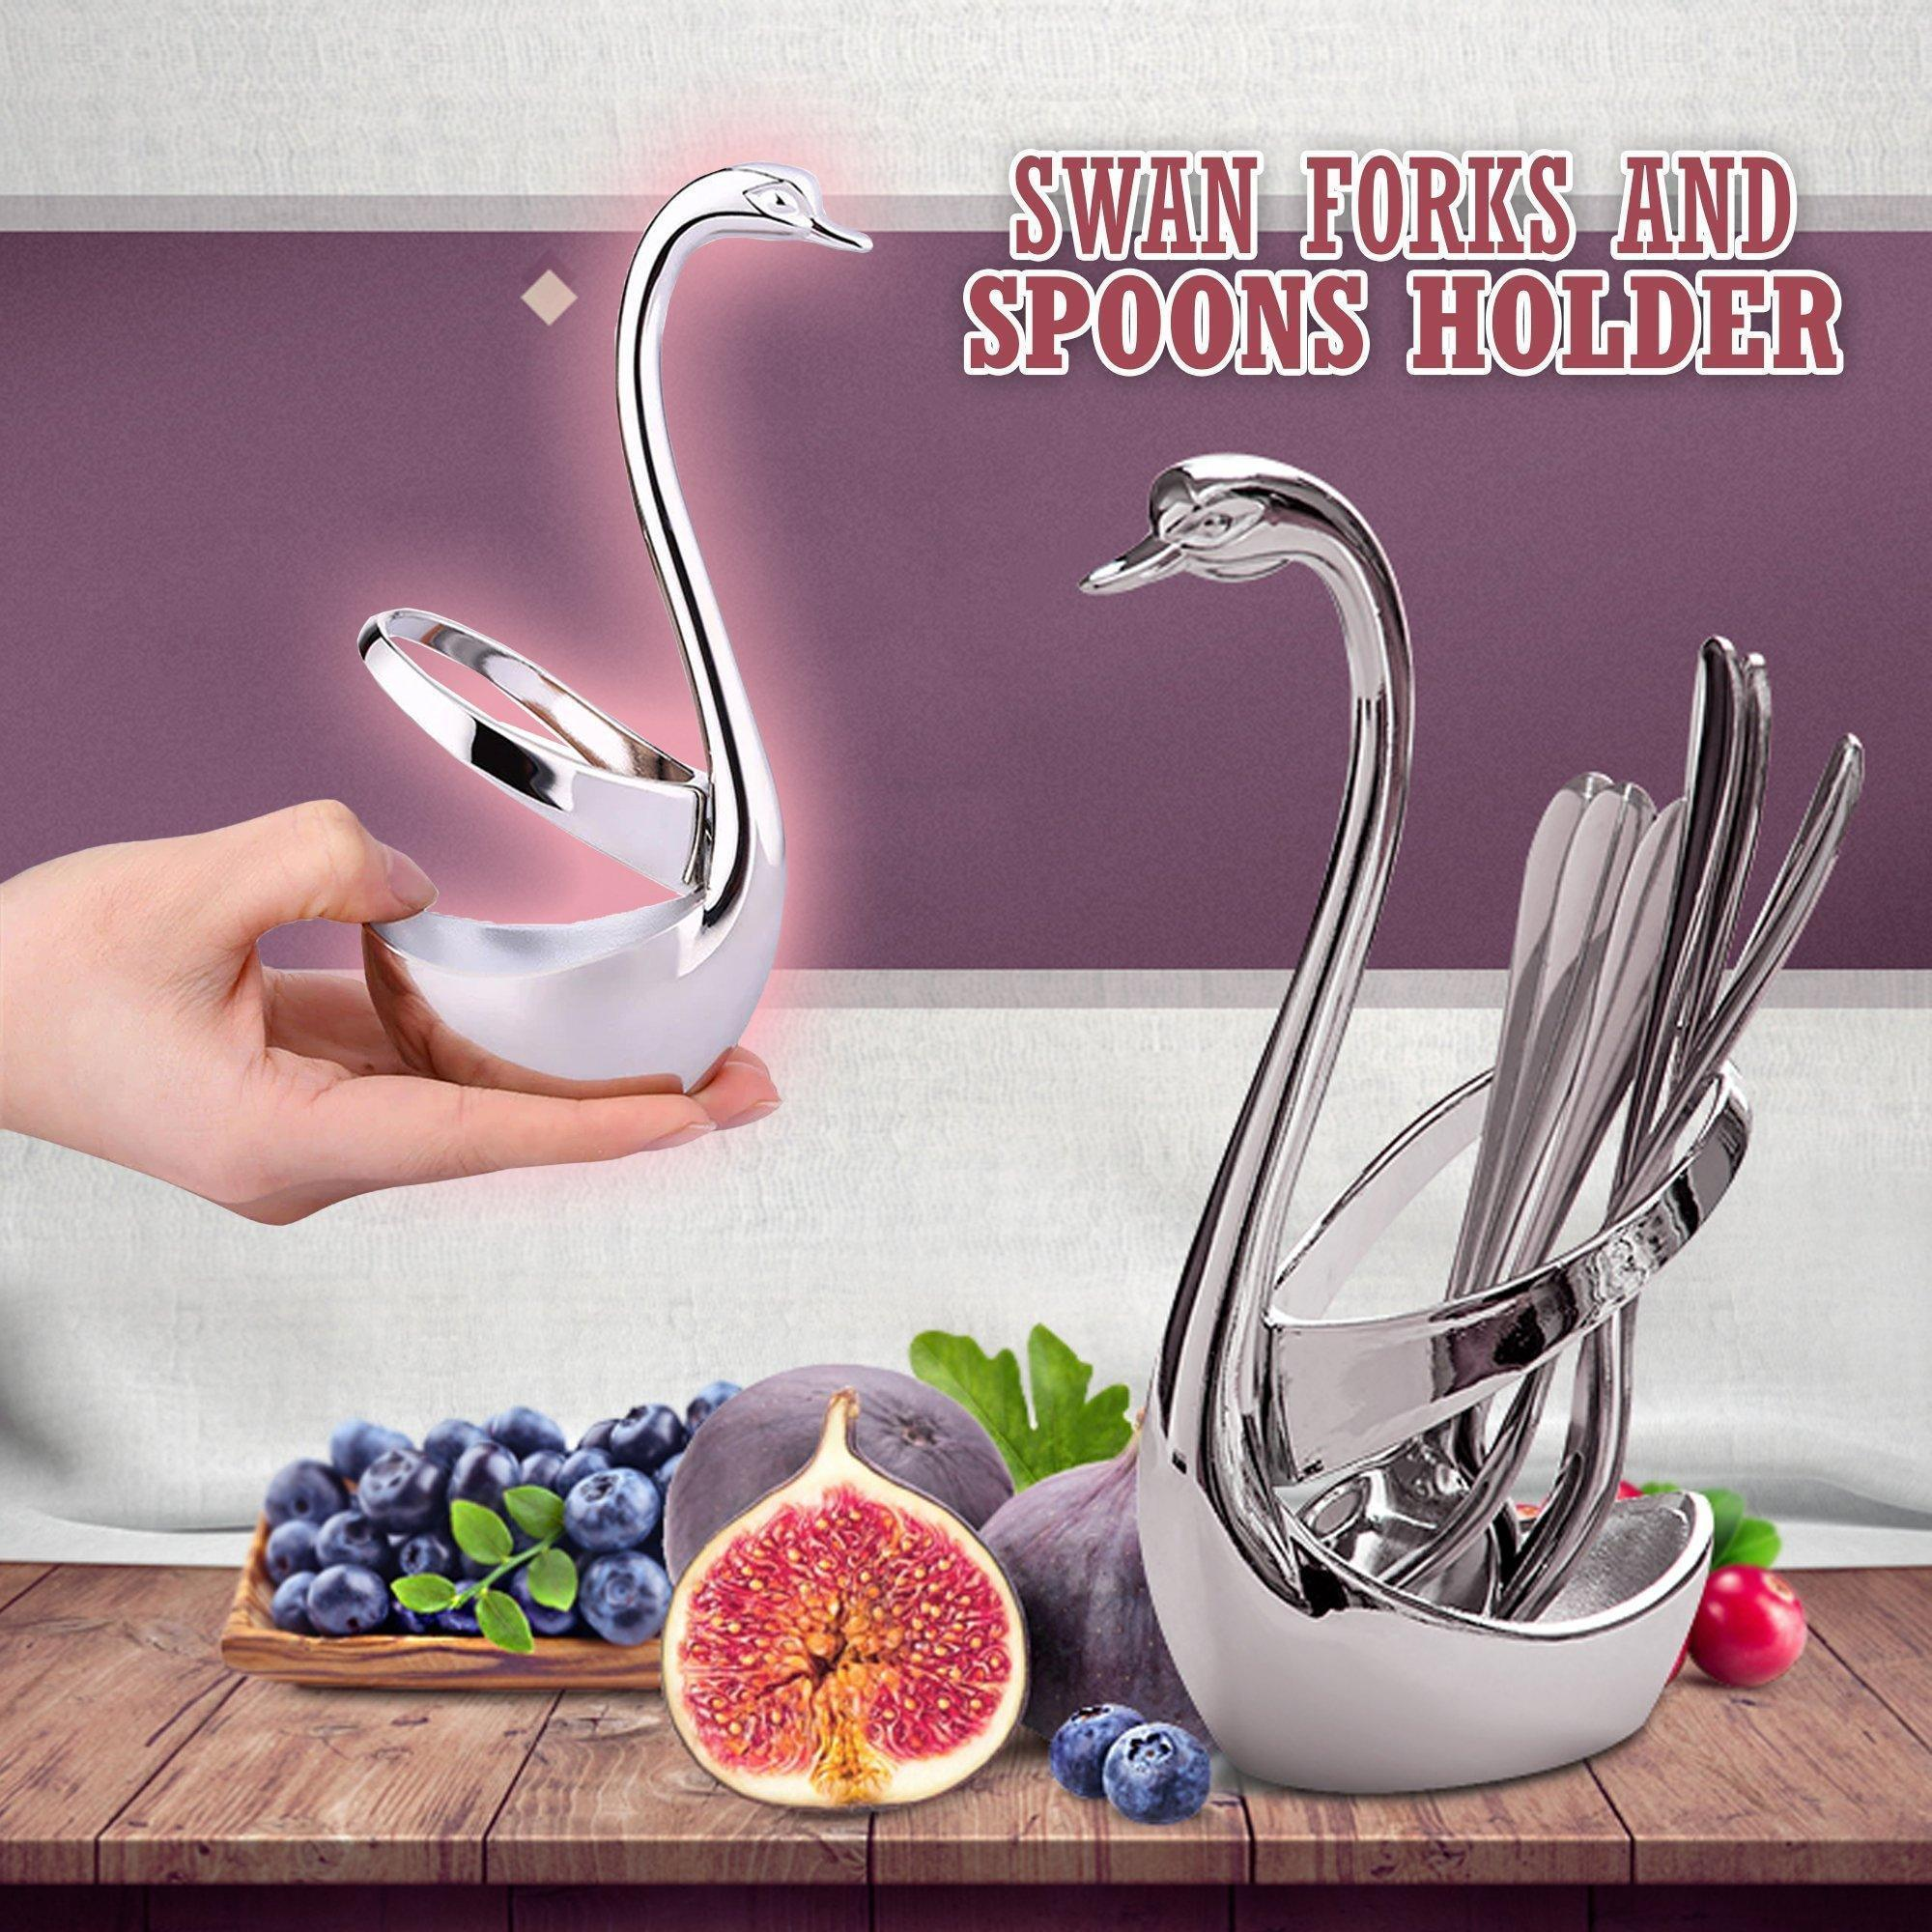 Swan Forks and Spoons Holder